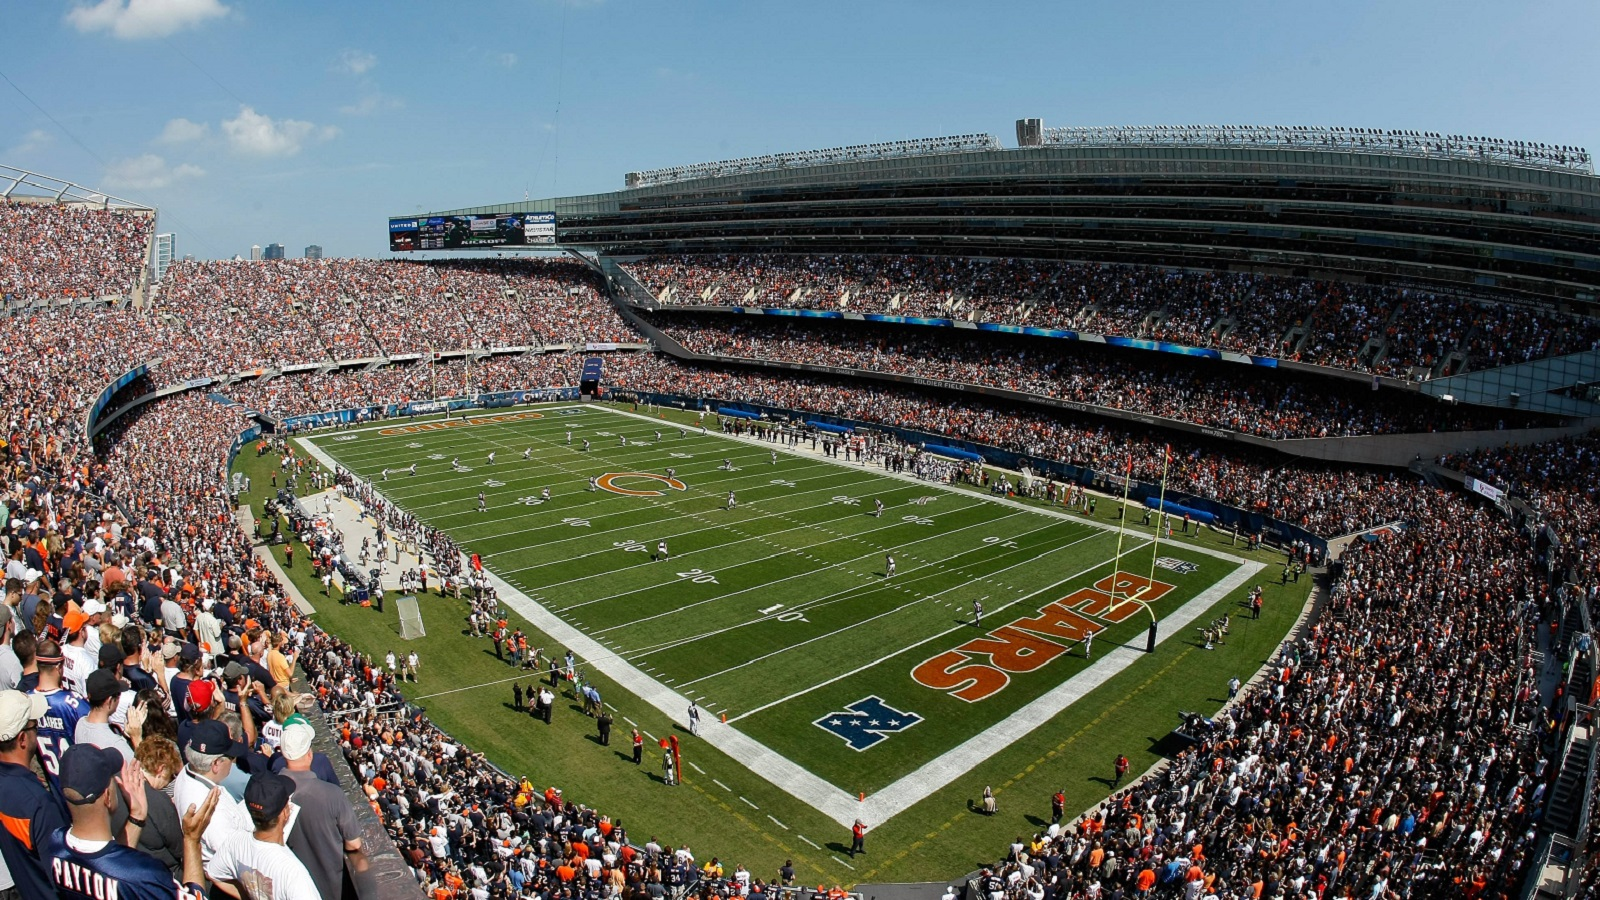 Chicago Sports Bears